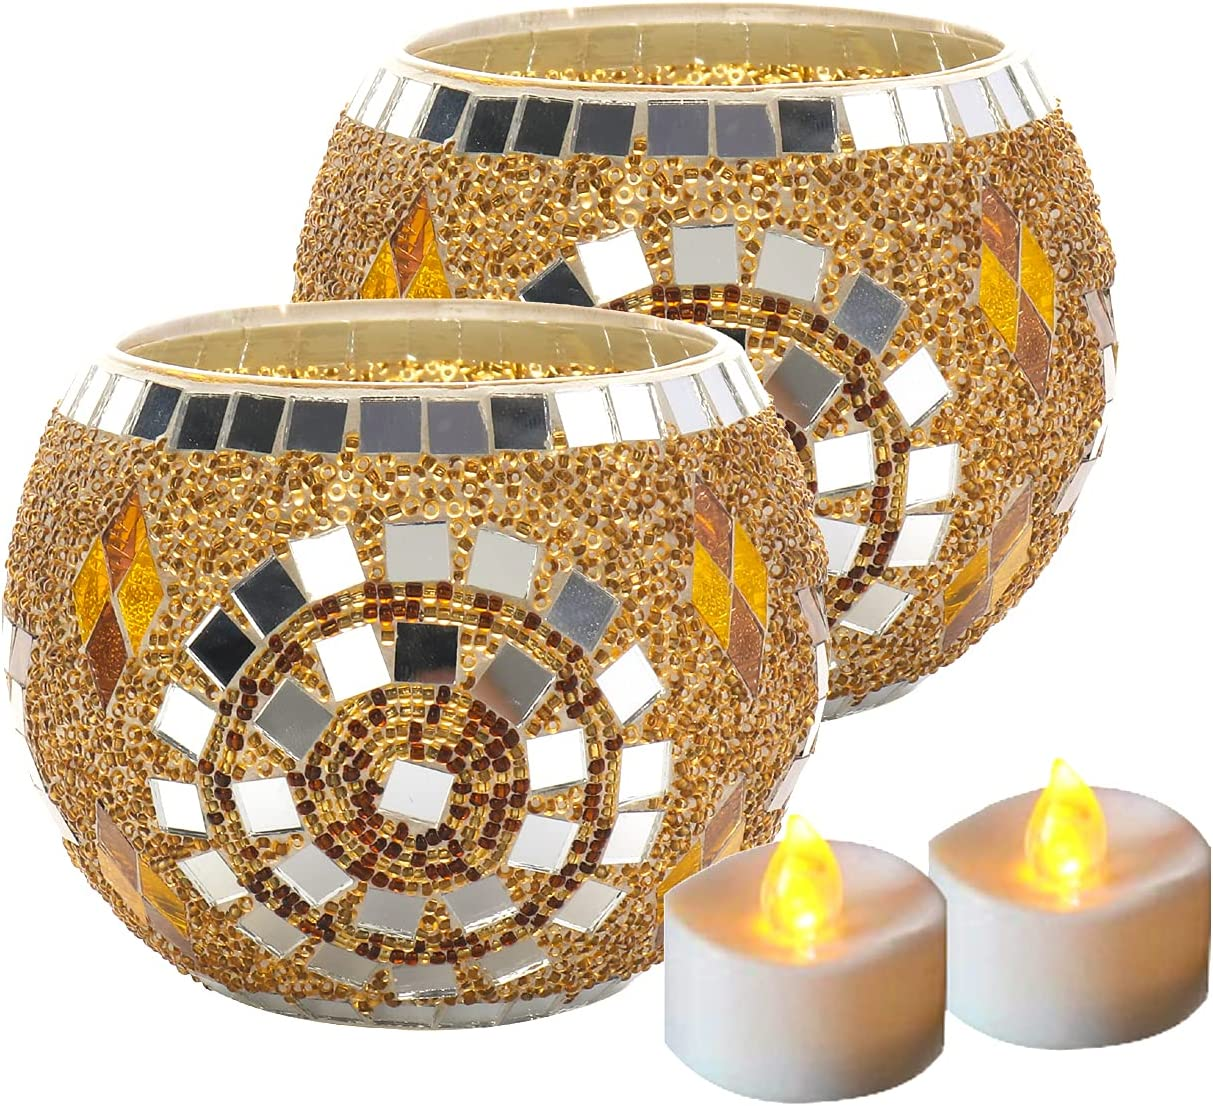 Votive Candle Holder Centerpiece, Mosaic Glass Tealight Holders for Home Decor, Table, Party Decorations, Handmade Gifts for Her, Vase for Potted Plants Bowl, Set of 2 (Golden Fairy)